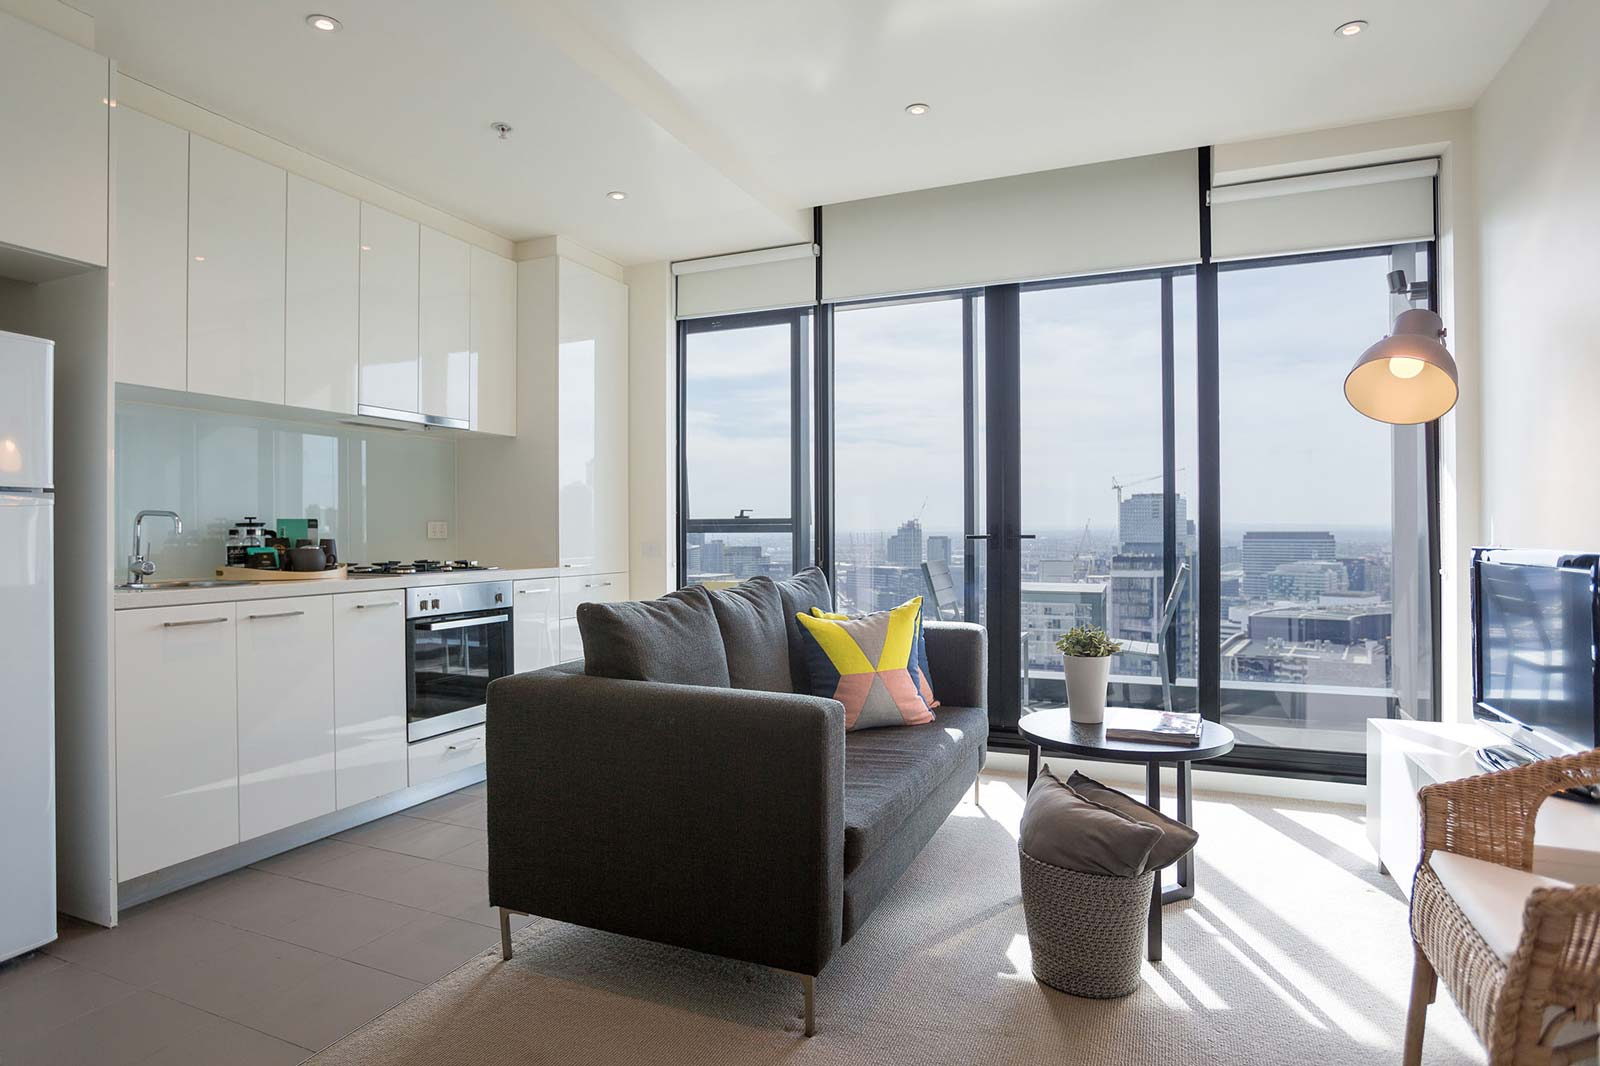 Aria Apartments - kitchen and Living Room